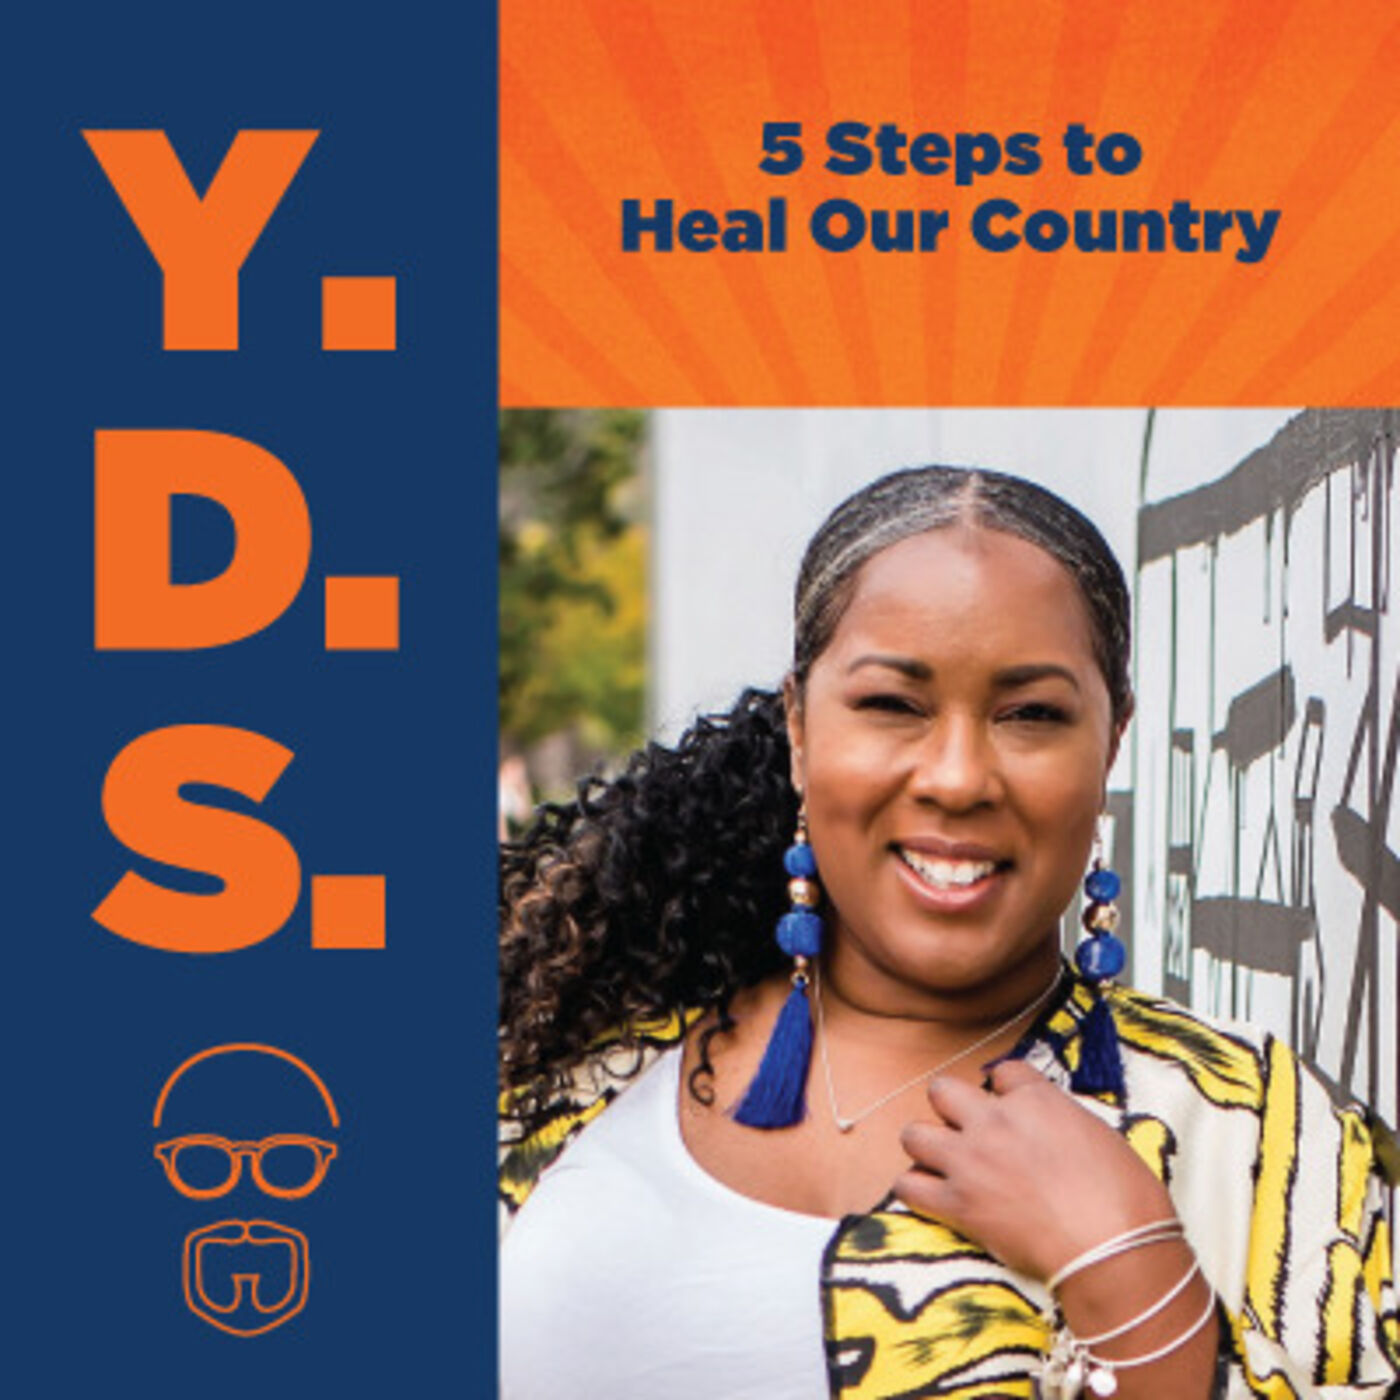 Ep. 21 – 5 Steps to Heal Our Country